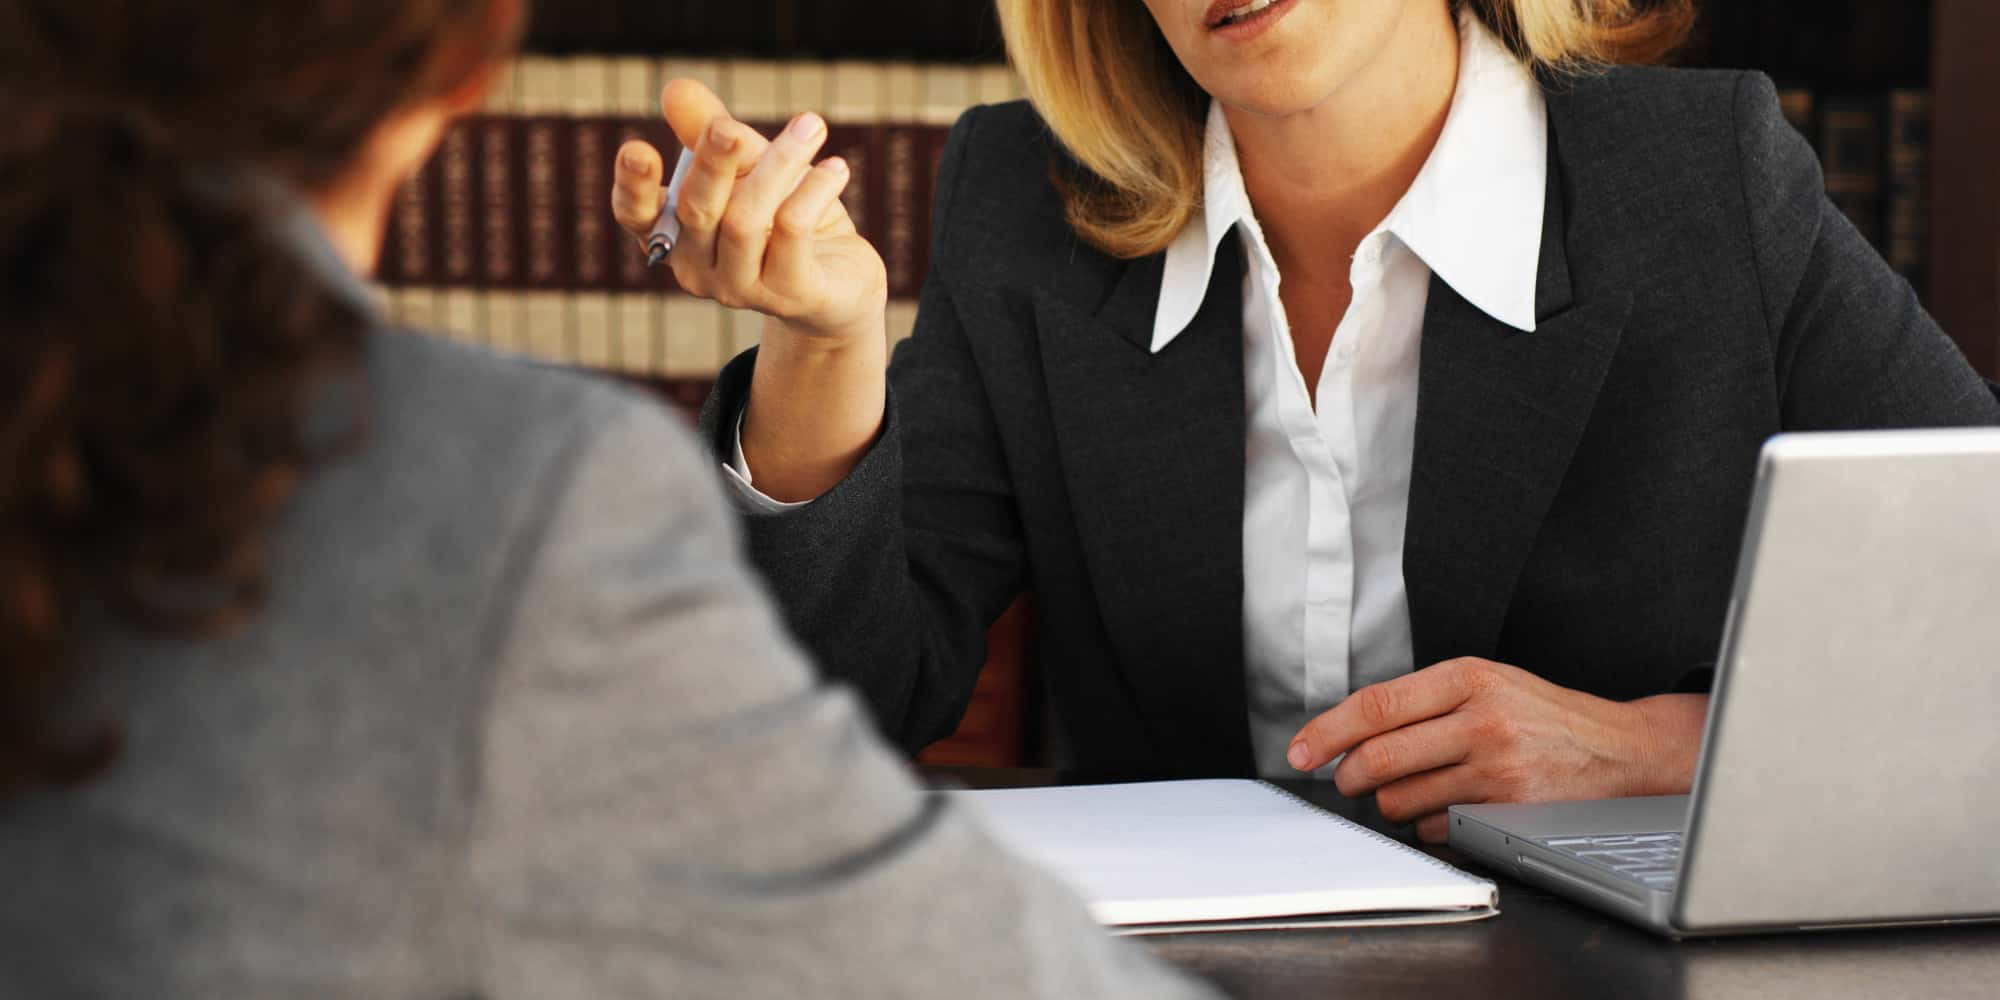 Association Of Professional Court Reporters